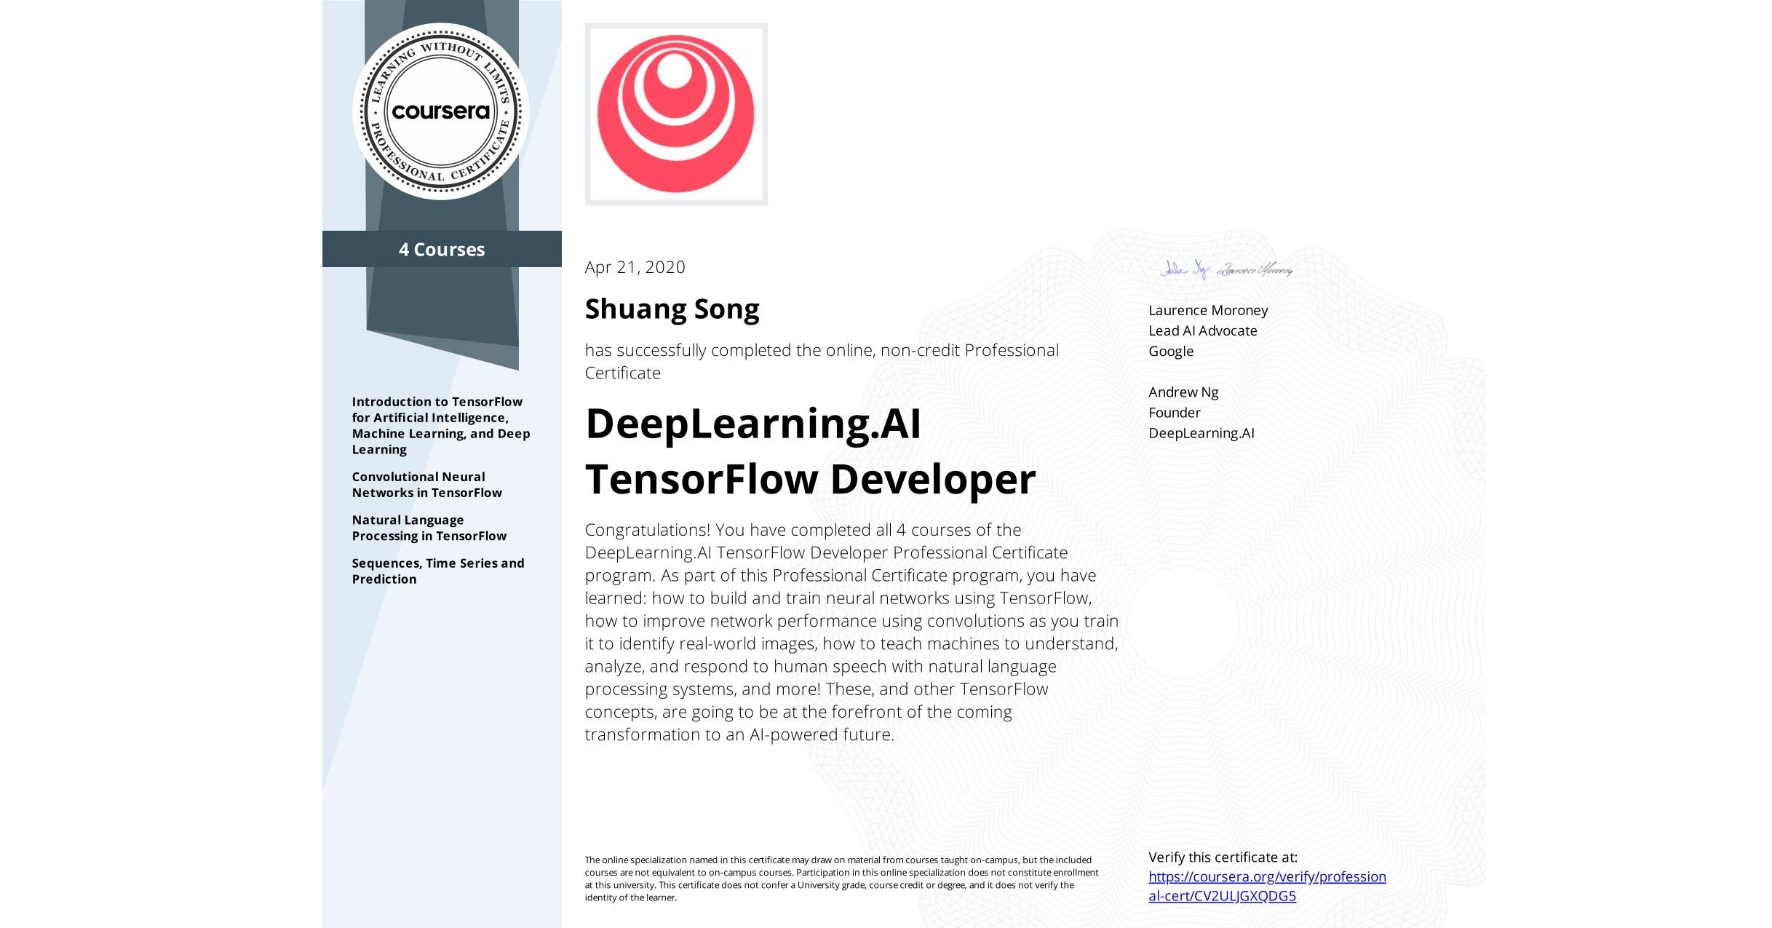 View certificate for Shuang Song, DeepLearning.AI TensorFlow Developer, offered through Coursera. Congratulations! You have completed all 4 courses of the DeepLearning.AI TensorFlow Developer Professional Certificate program.   As part of this Professional Certificate program, you have learned: how to build and train neural networks using TensorFlow, how to improve network performance using convolutions as you train it to identify real-world images, how to teach machines to understand, analyze, and respond to human speech with natural language processing systems, and more!  These, and other TensorFlow concepts, are going to be at the forefront of the coming transformation to an AI-powered future.